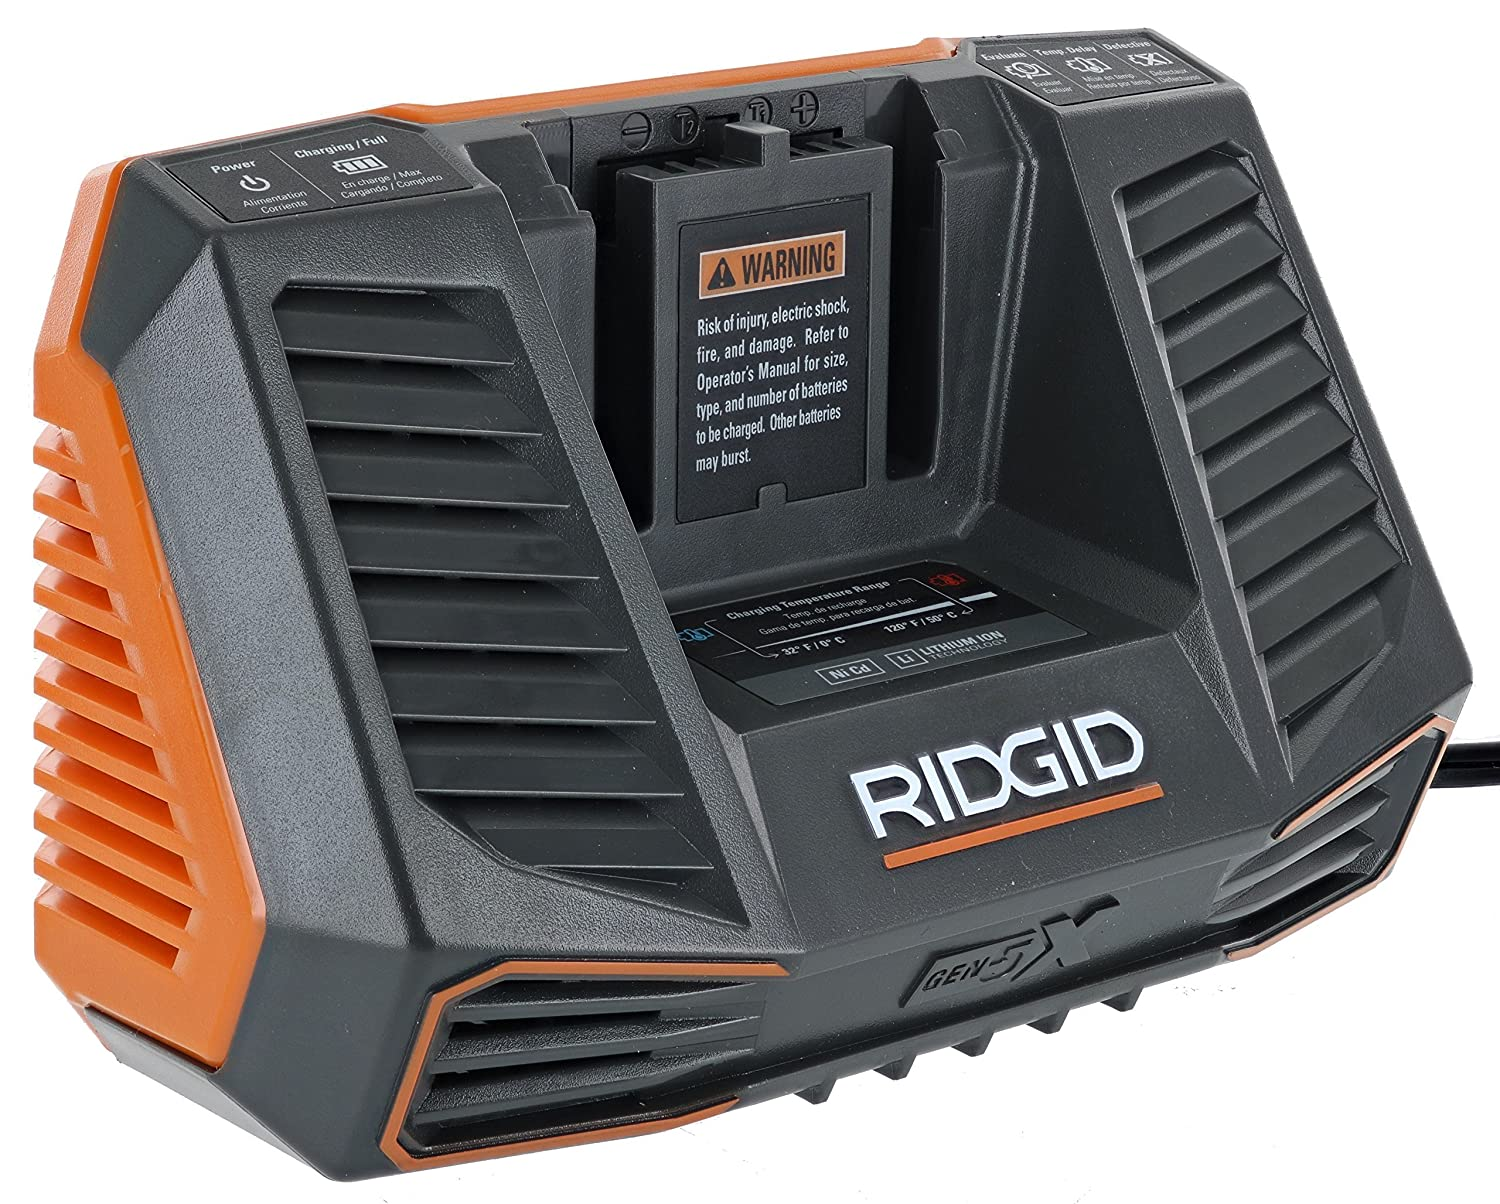 Ridgid R840095 Gen5X Genuine OEM Dual Chemistry Battery Charger for 18V lithium ion or NiCad batteries (Battery Not Included, Charger Only)(Certified Refurbished)